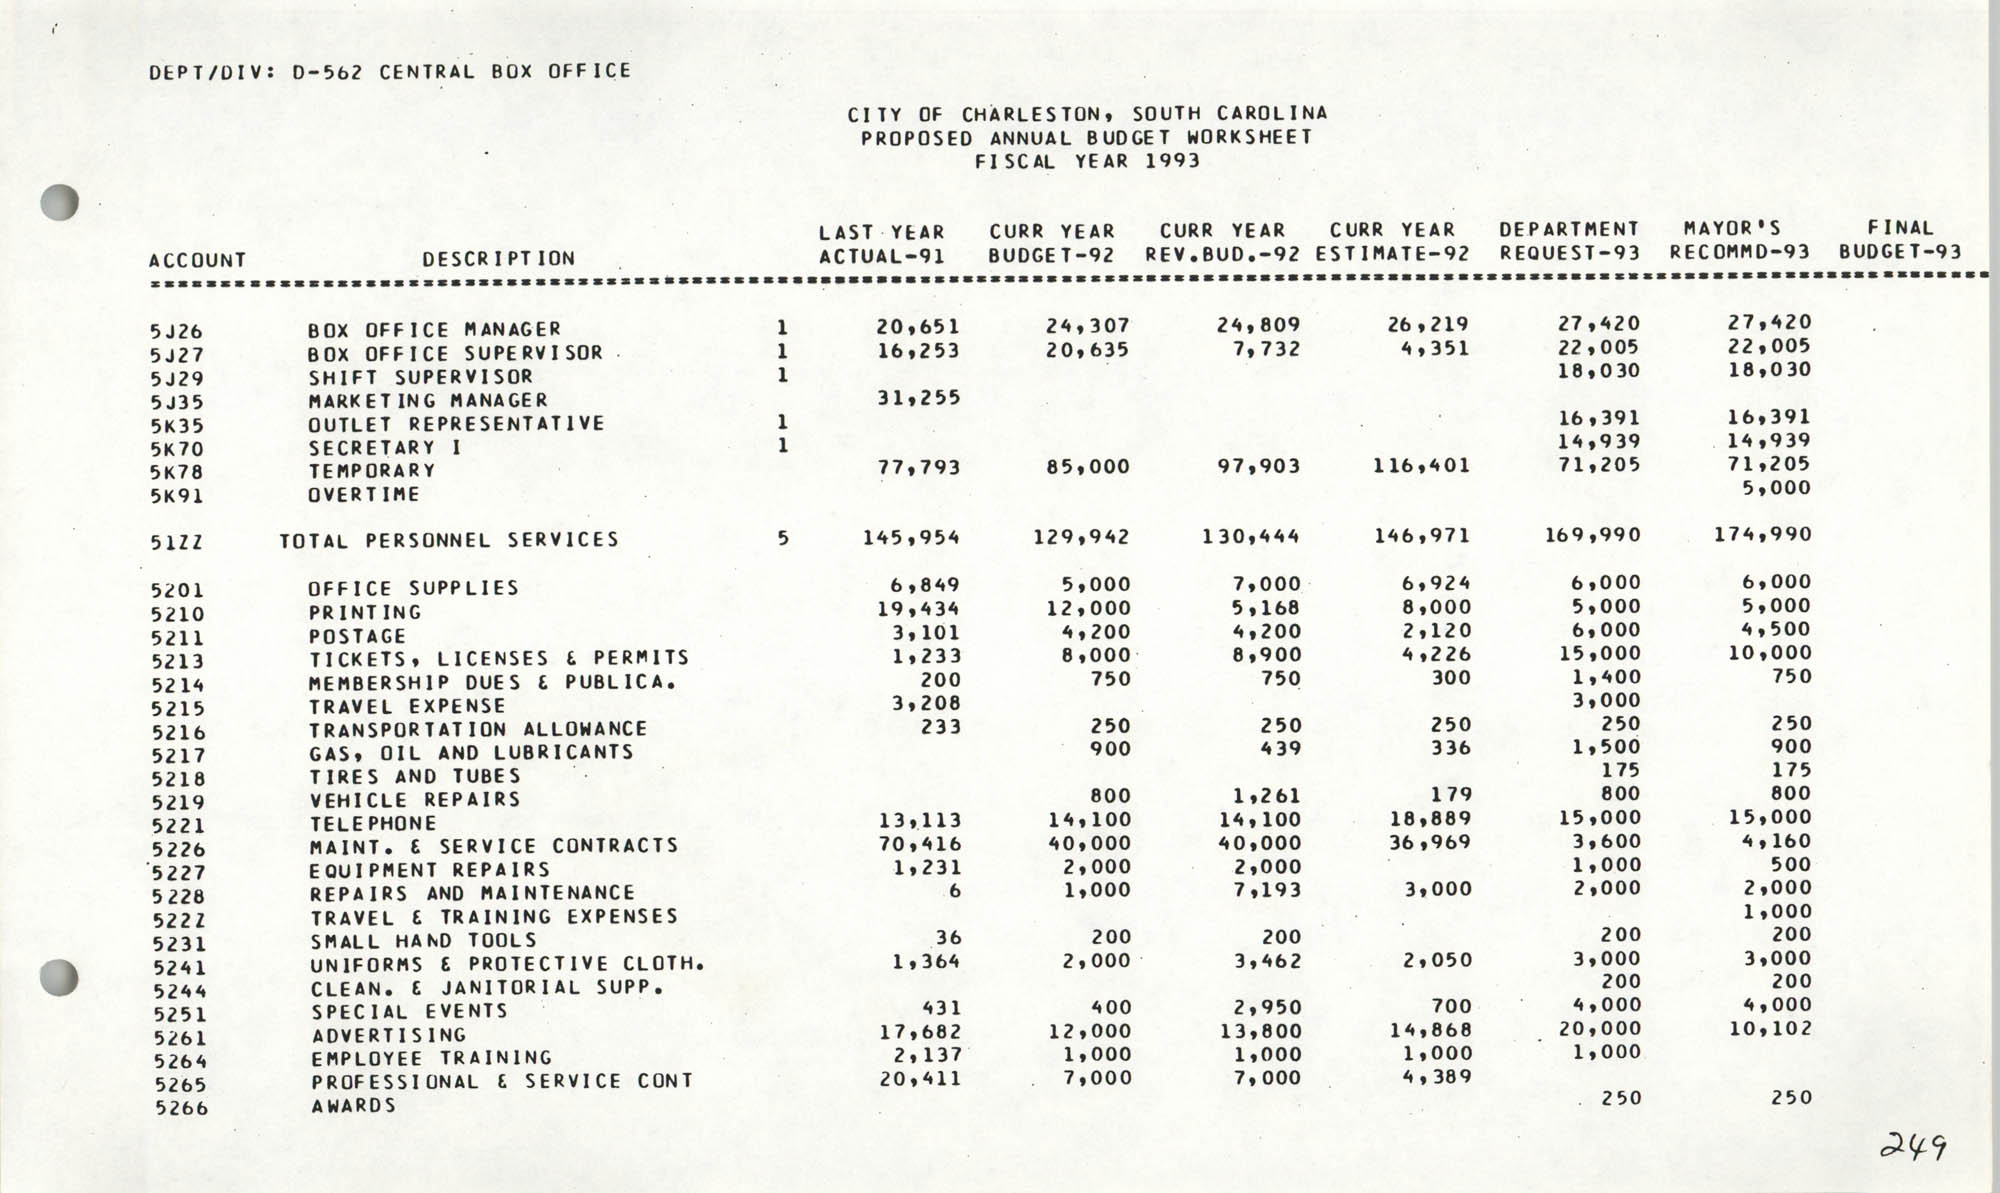 The City Council of Charleston, South Carolina, 1993 Budget, Page 249